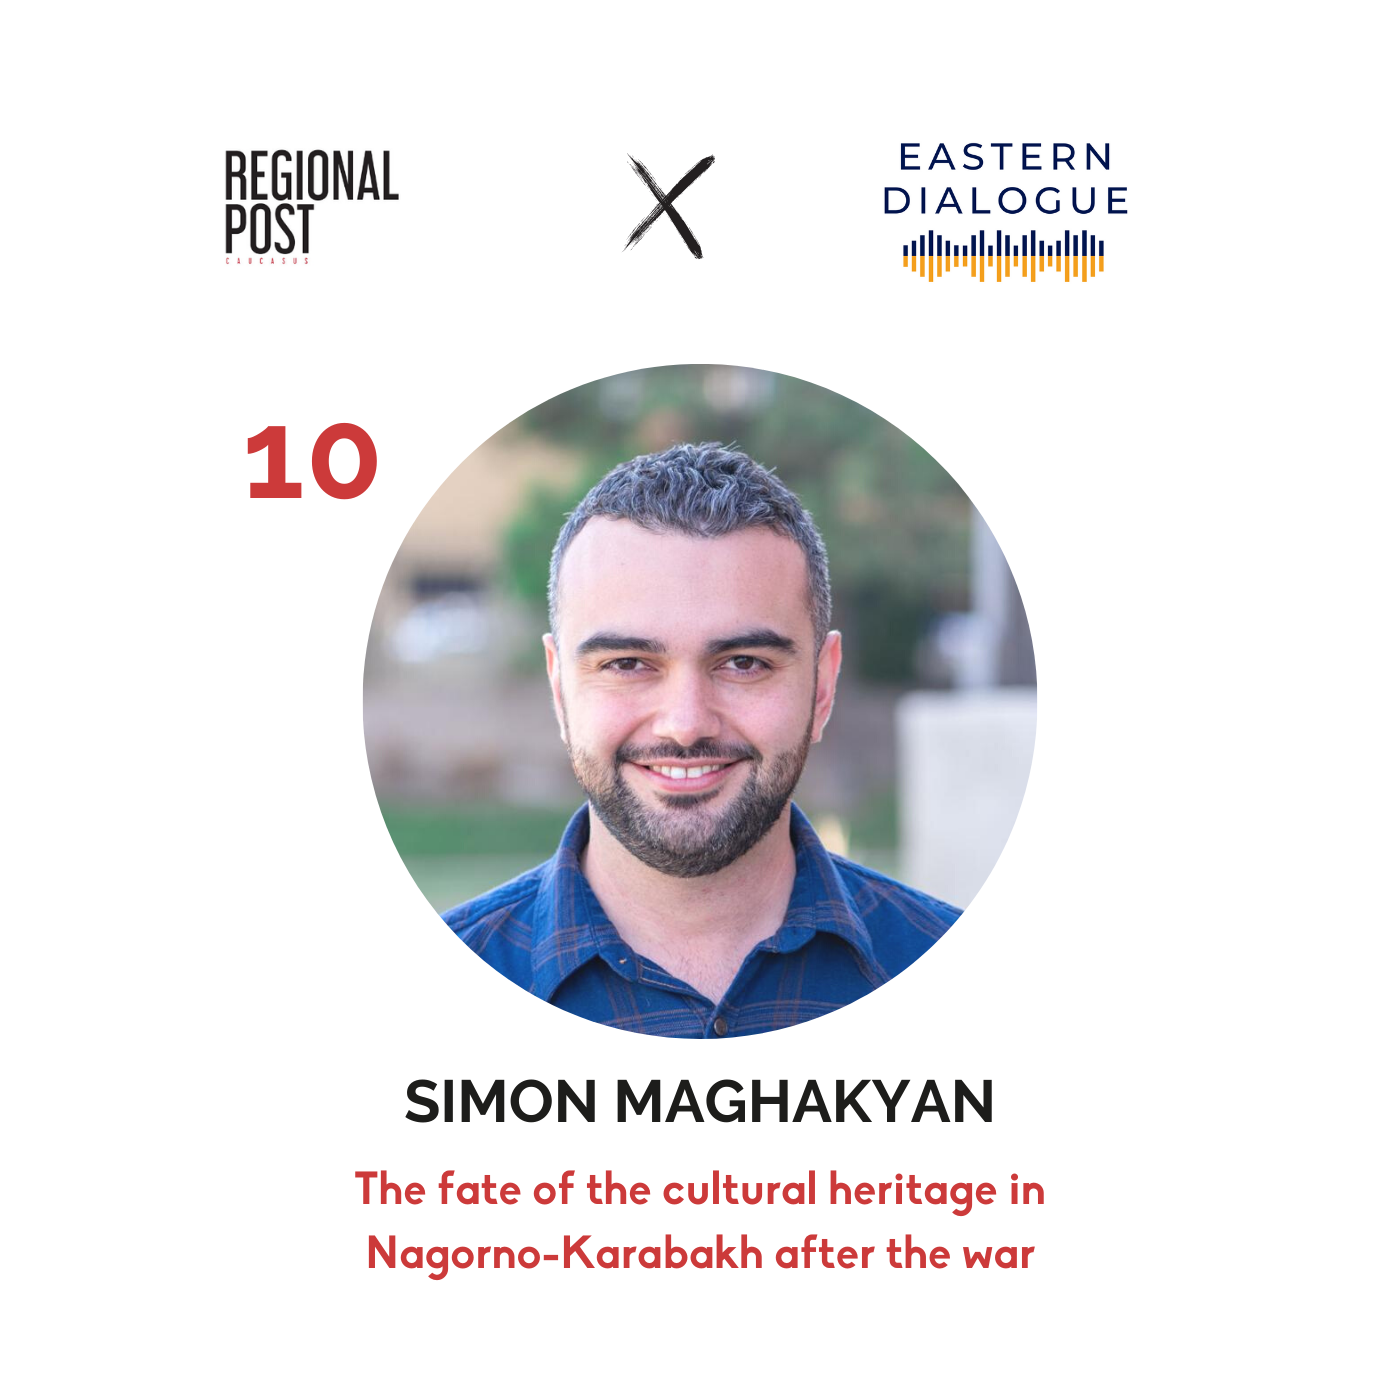 Simon Maghakyan - The fate of the cultural heritage in Nagorno-Karabakh after the war